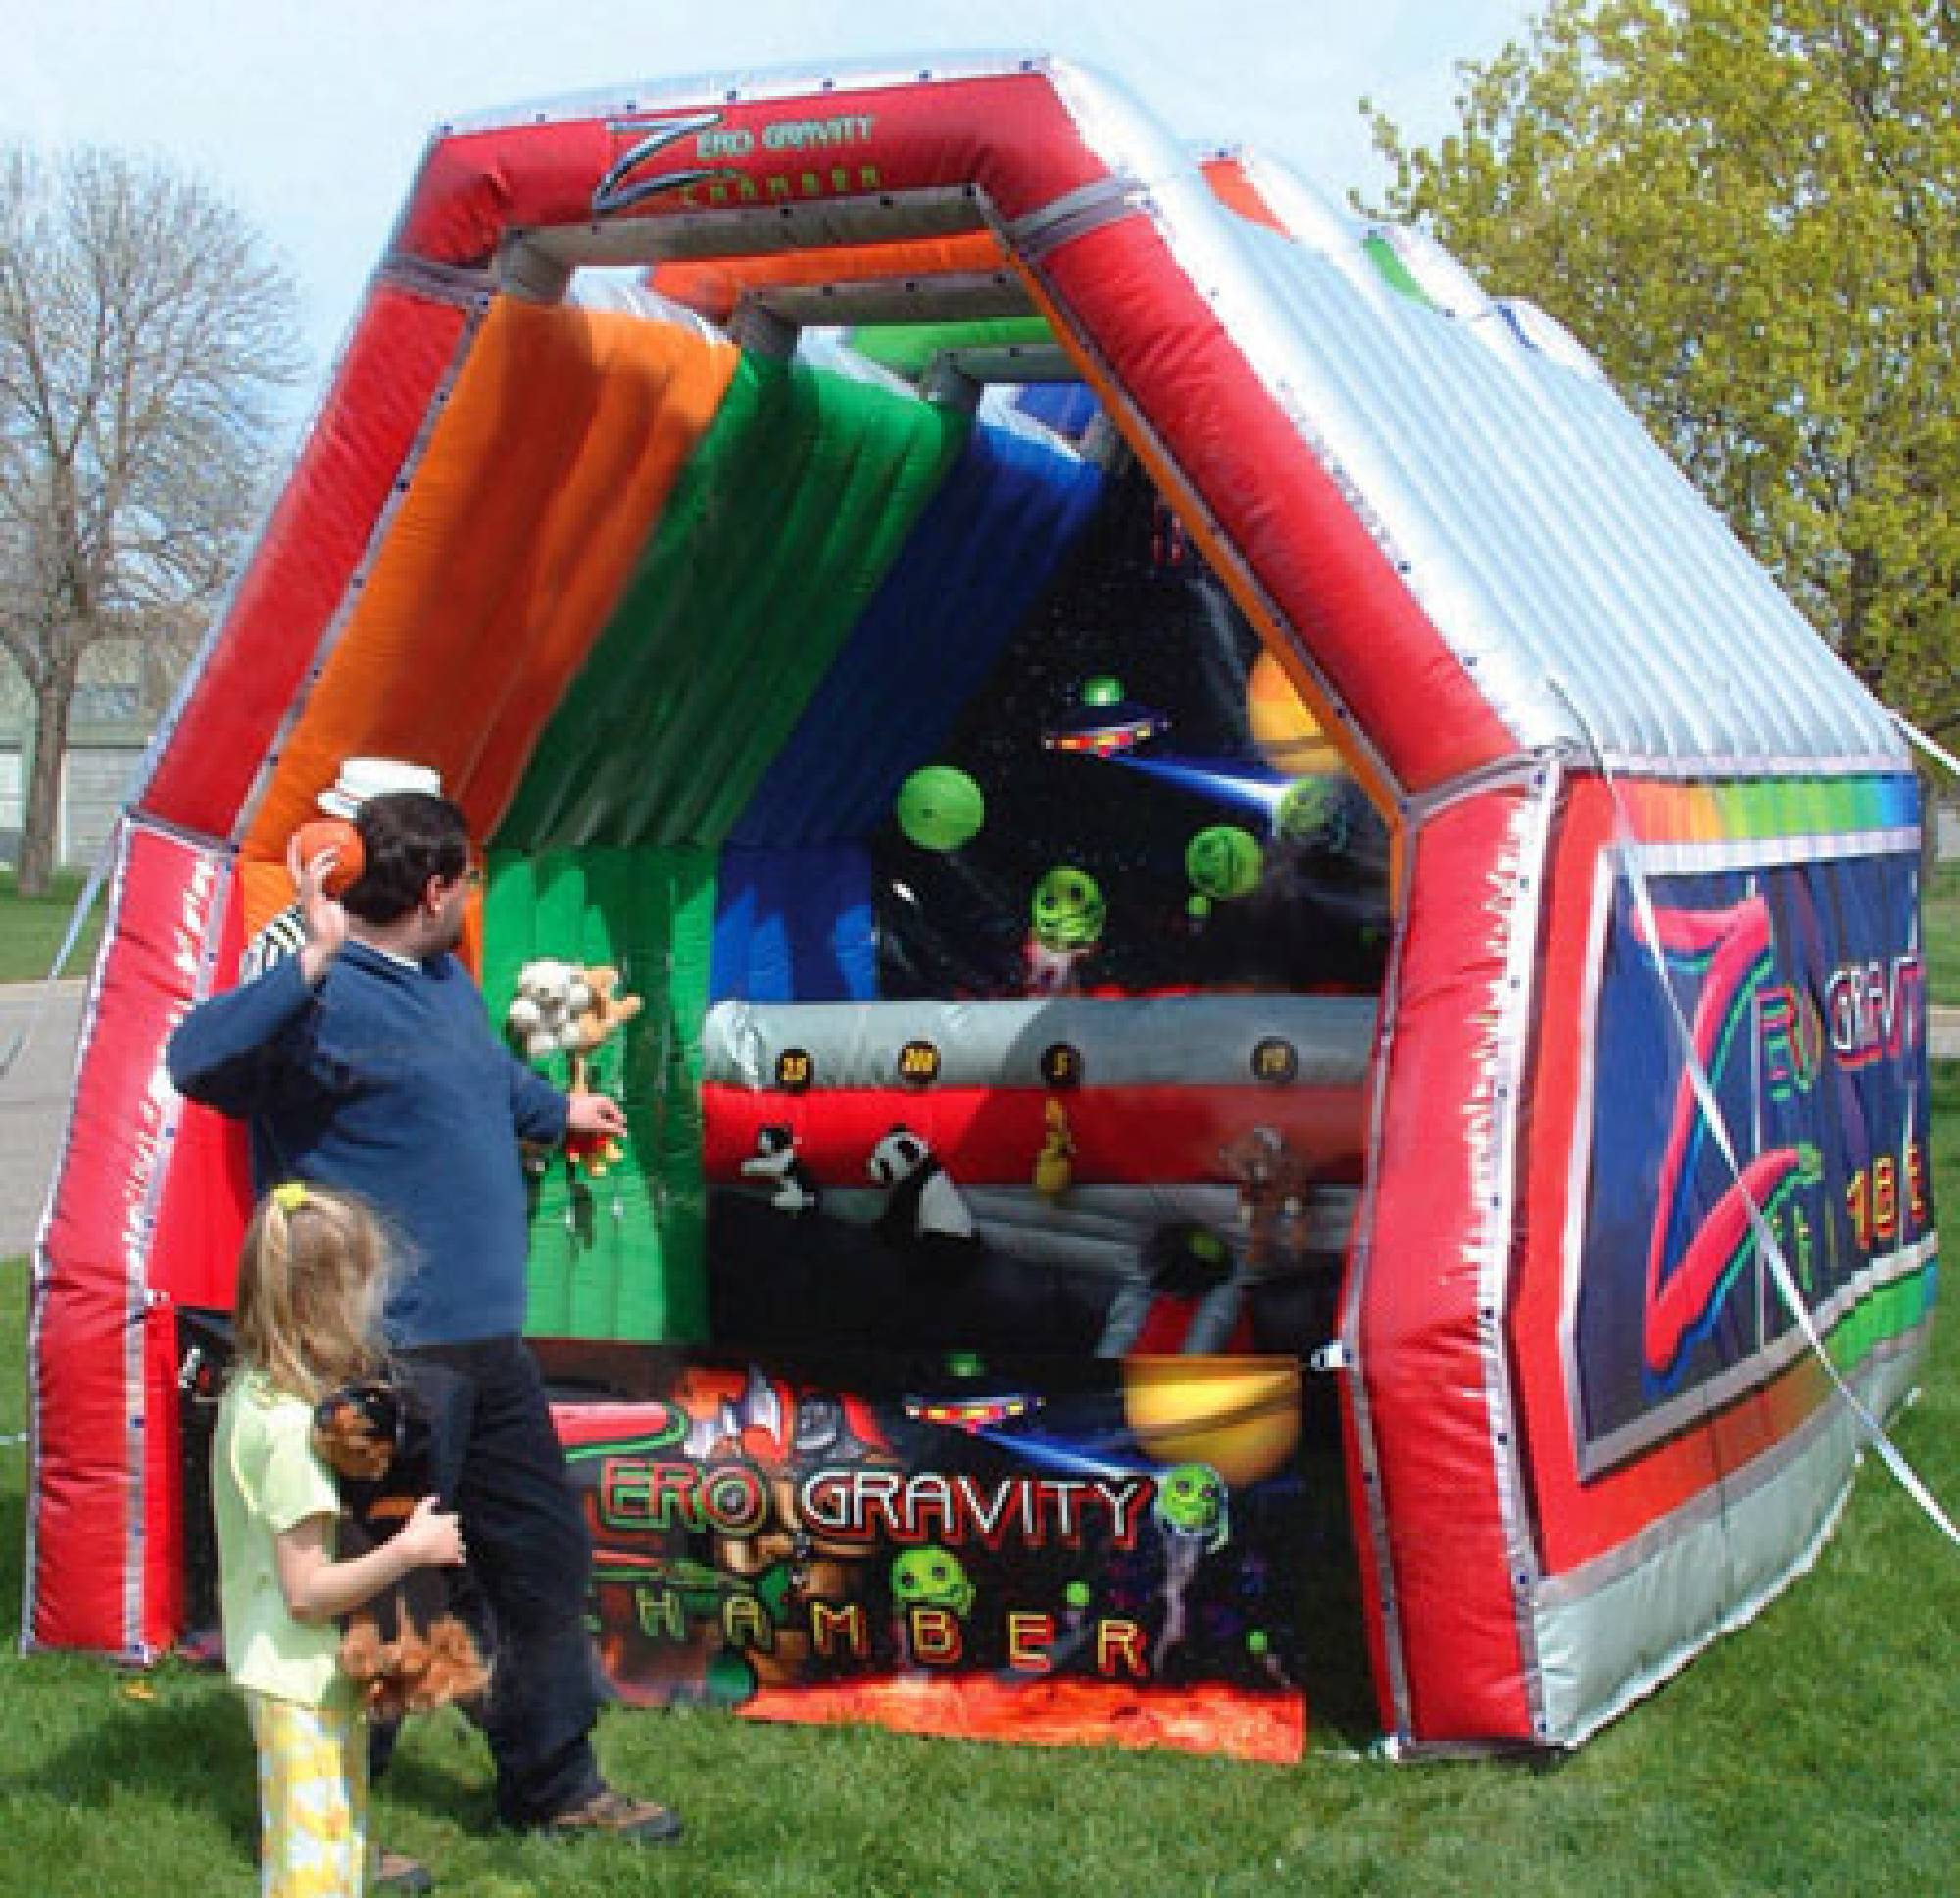 Zero Gravity Chamber inflatable rental game in Raleigh NC